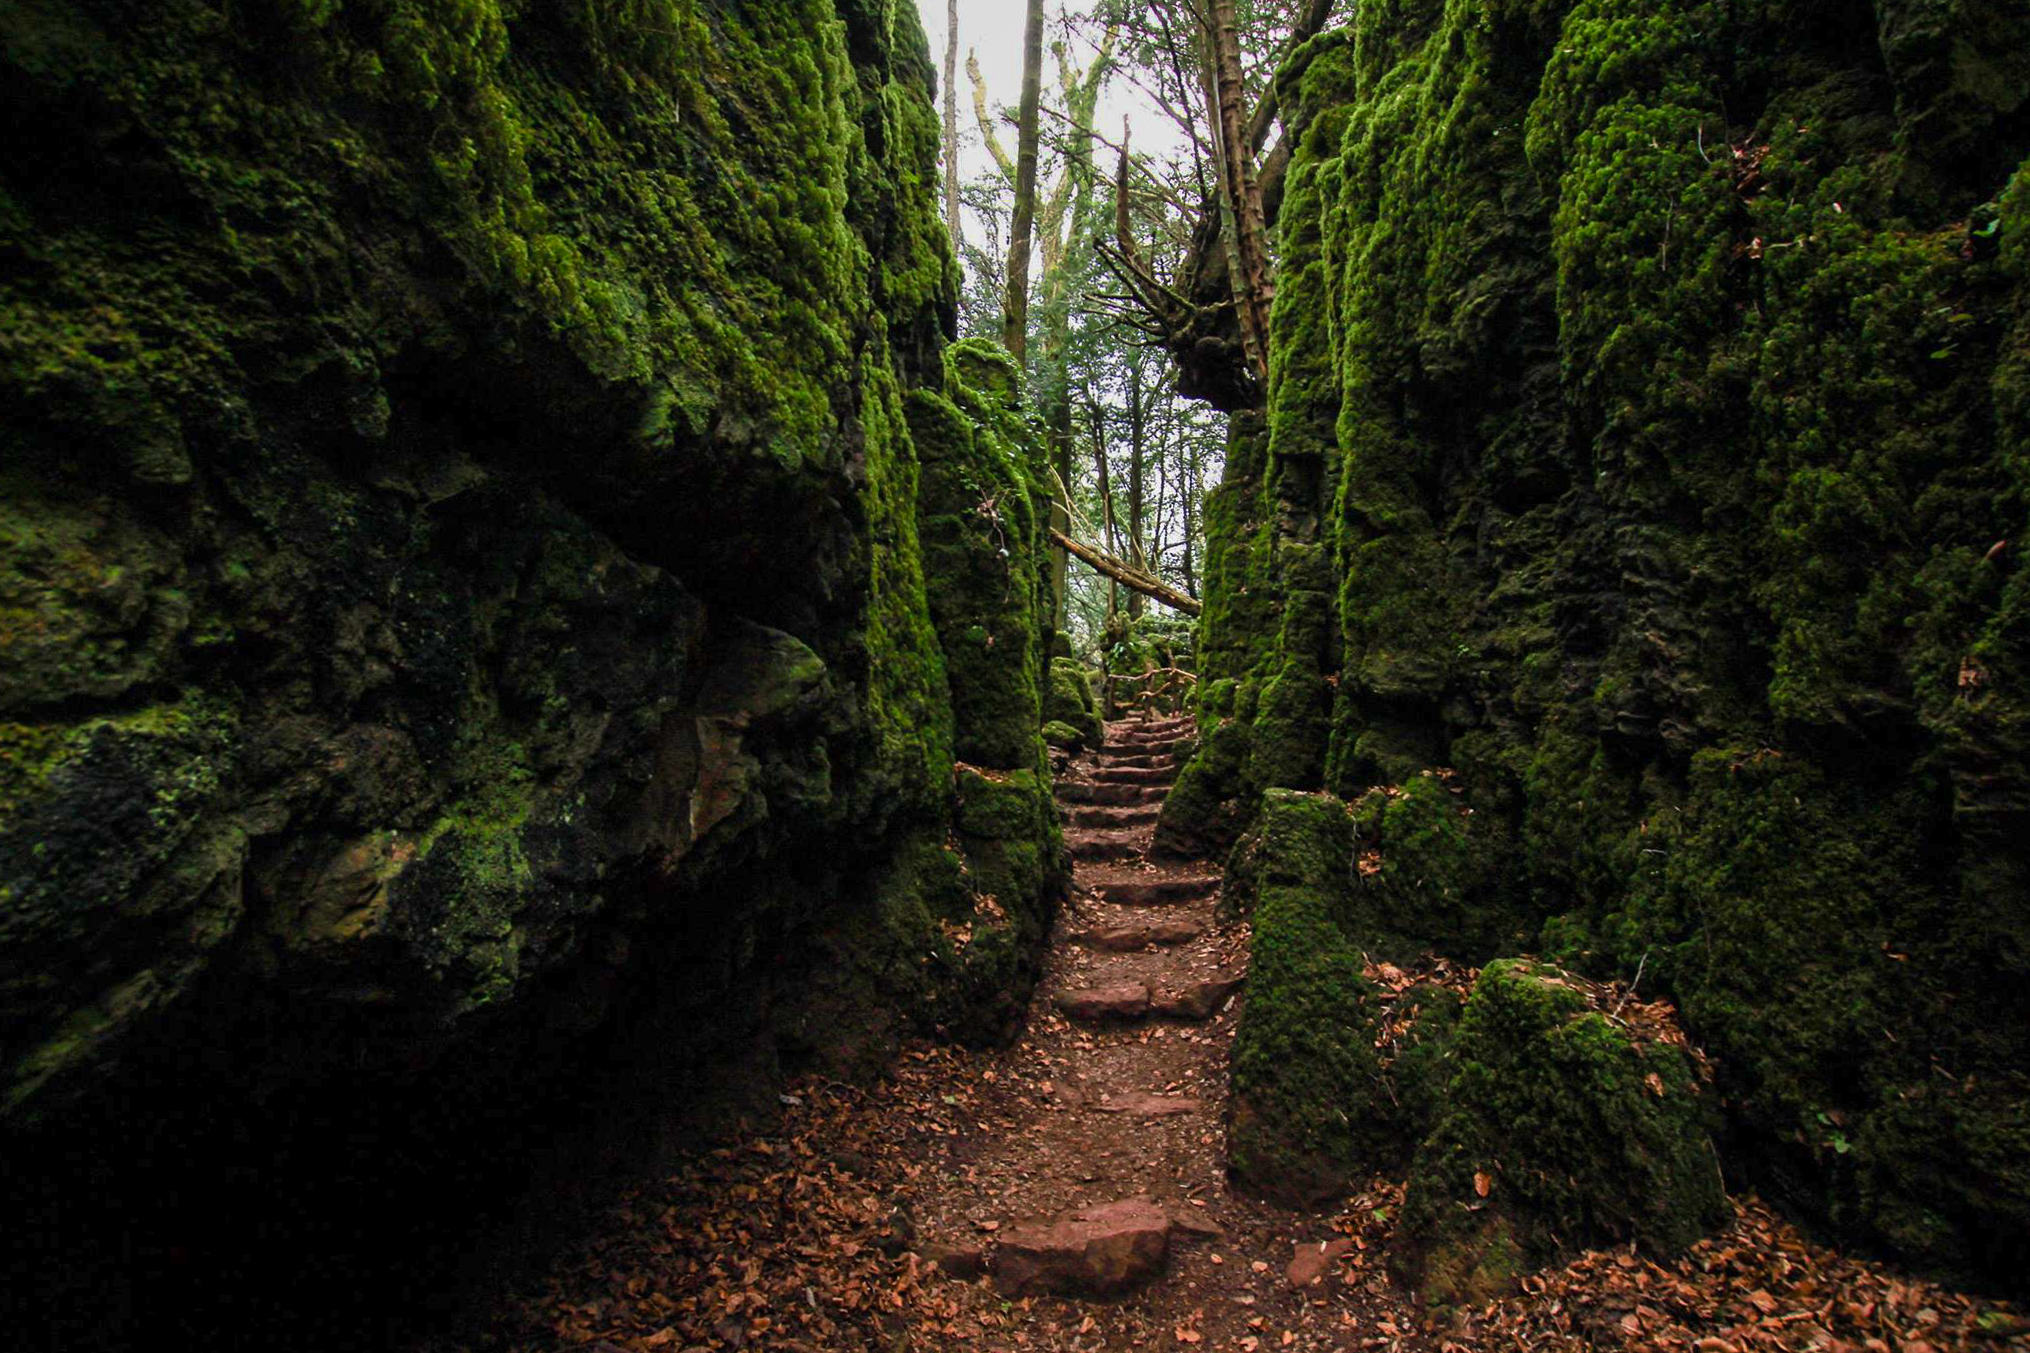 Puzzlewood Forest of Dean Star Wars Doctor Who Filming Location Woodland Green Moss Top 25 Things to Do in Herefordshire